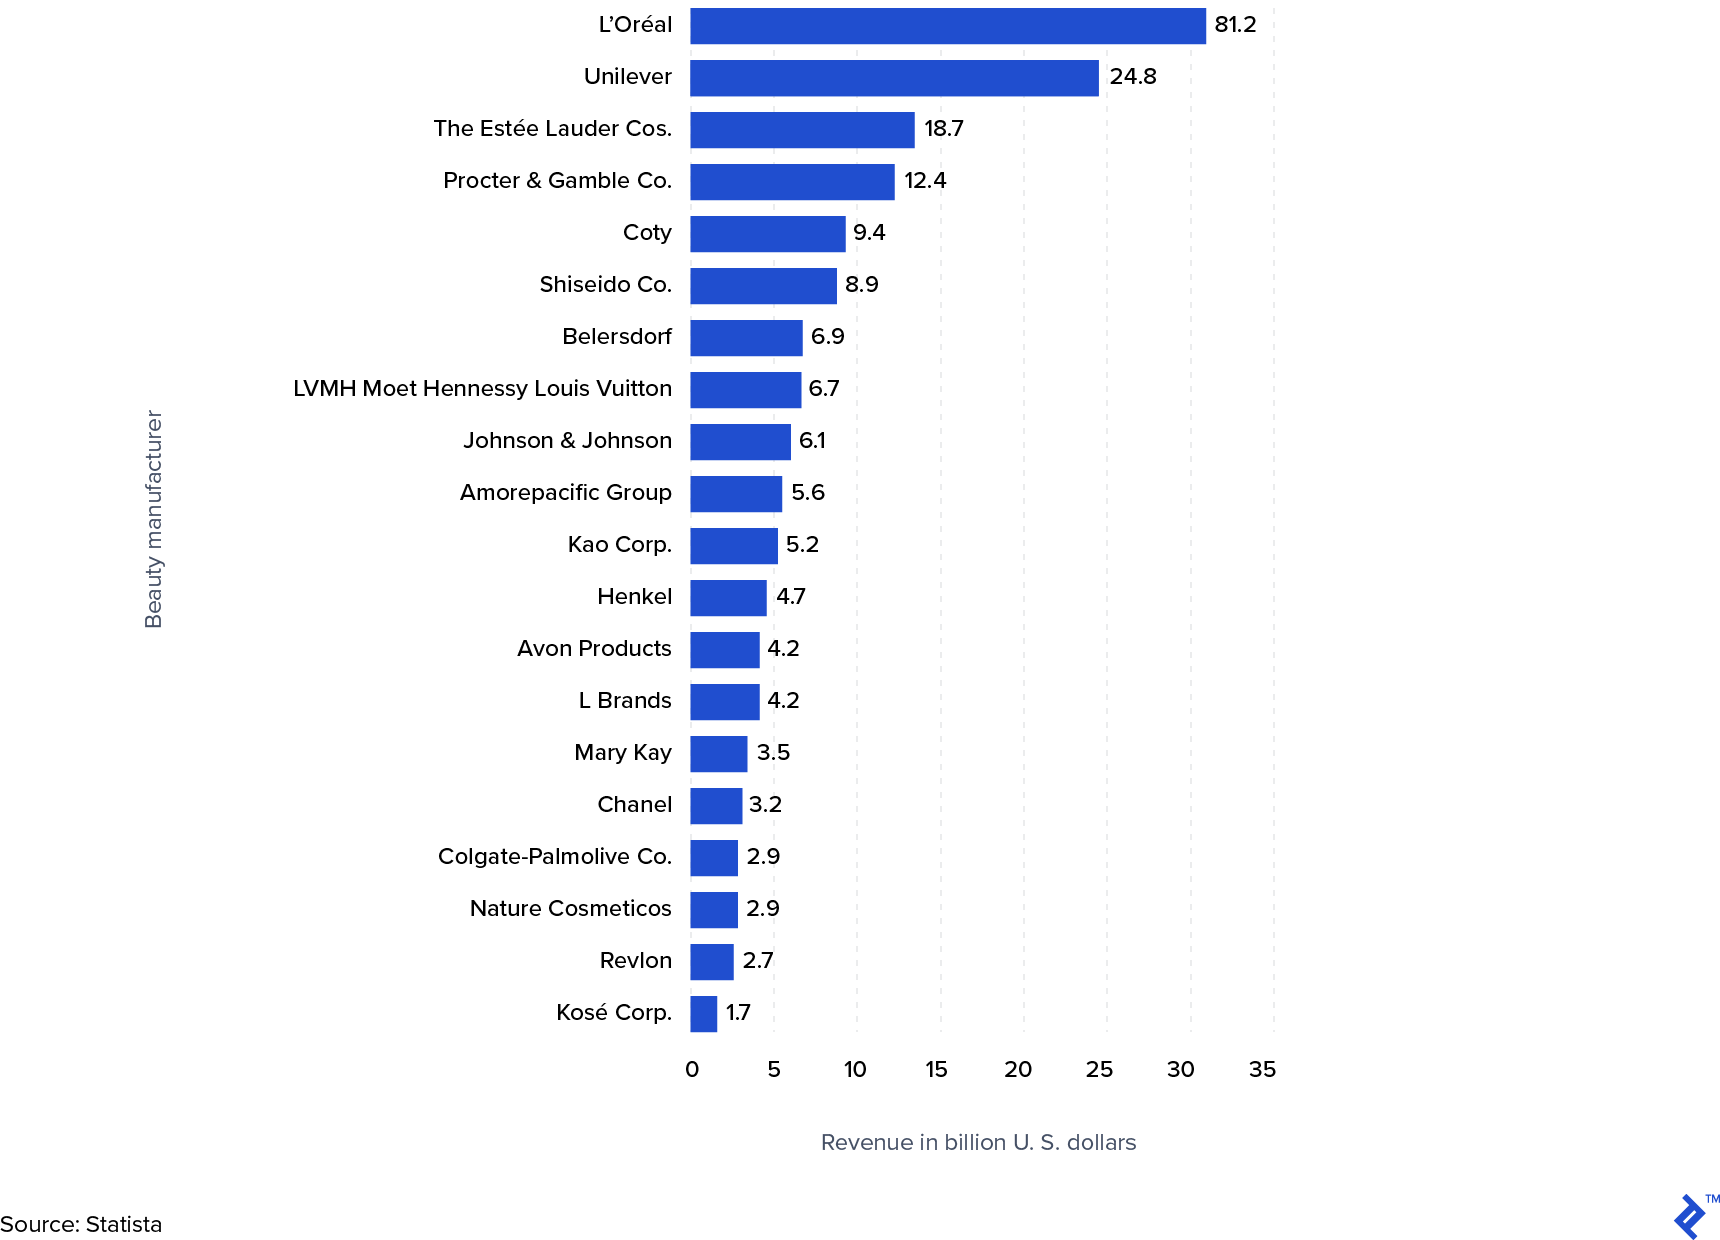 Revenue of the leading 20 beautify manufacturers worldwide in 2018 (US $ billions).